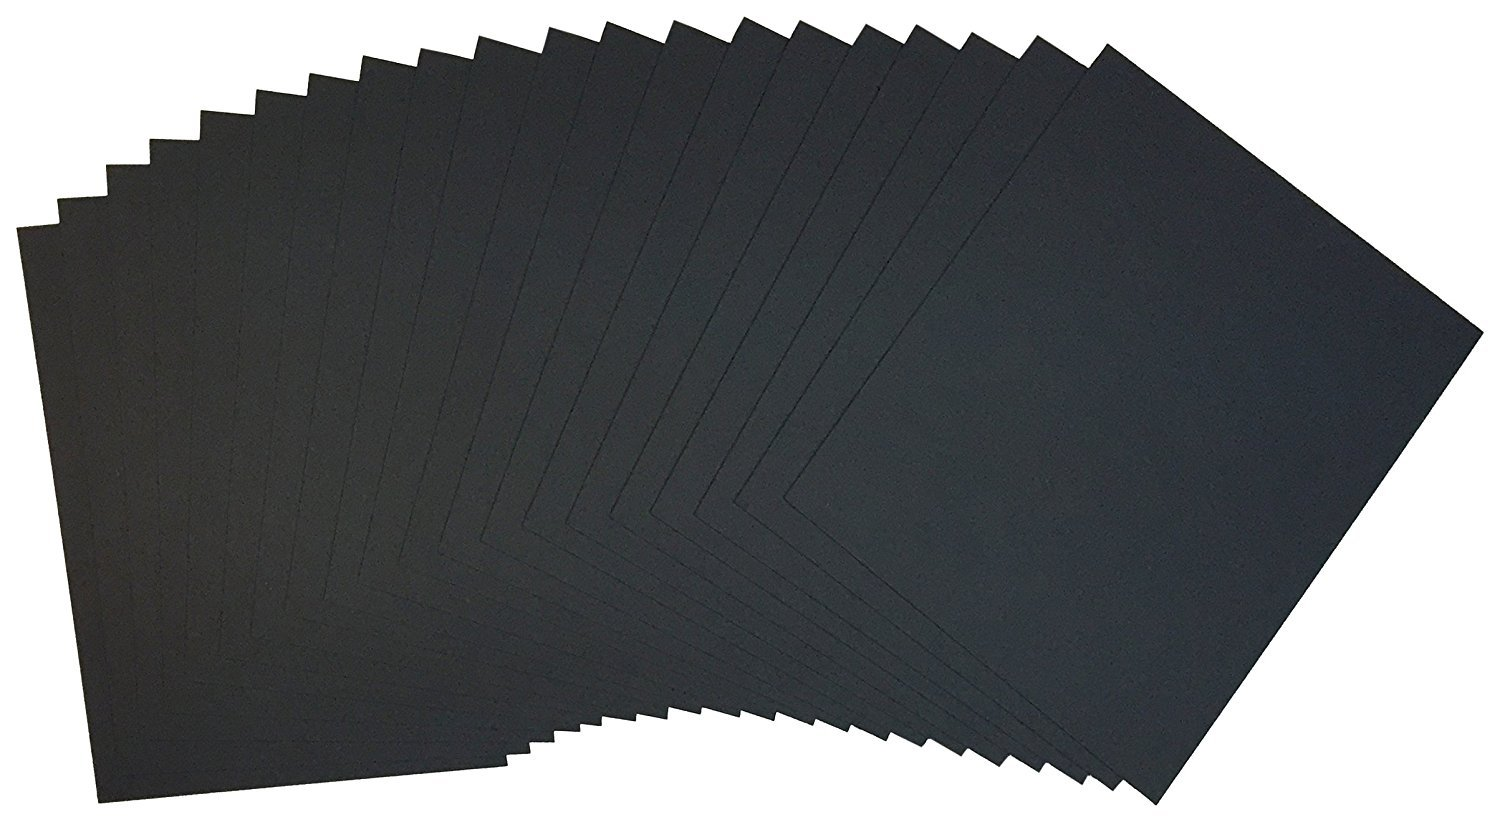 Crescent #6008 Ultra Black Smooth Board 11''x14'' (25 Sheets) by Ultra Black Smooth Display Boards